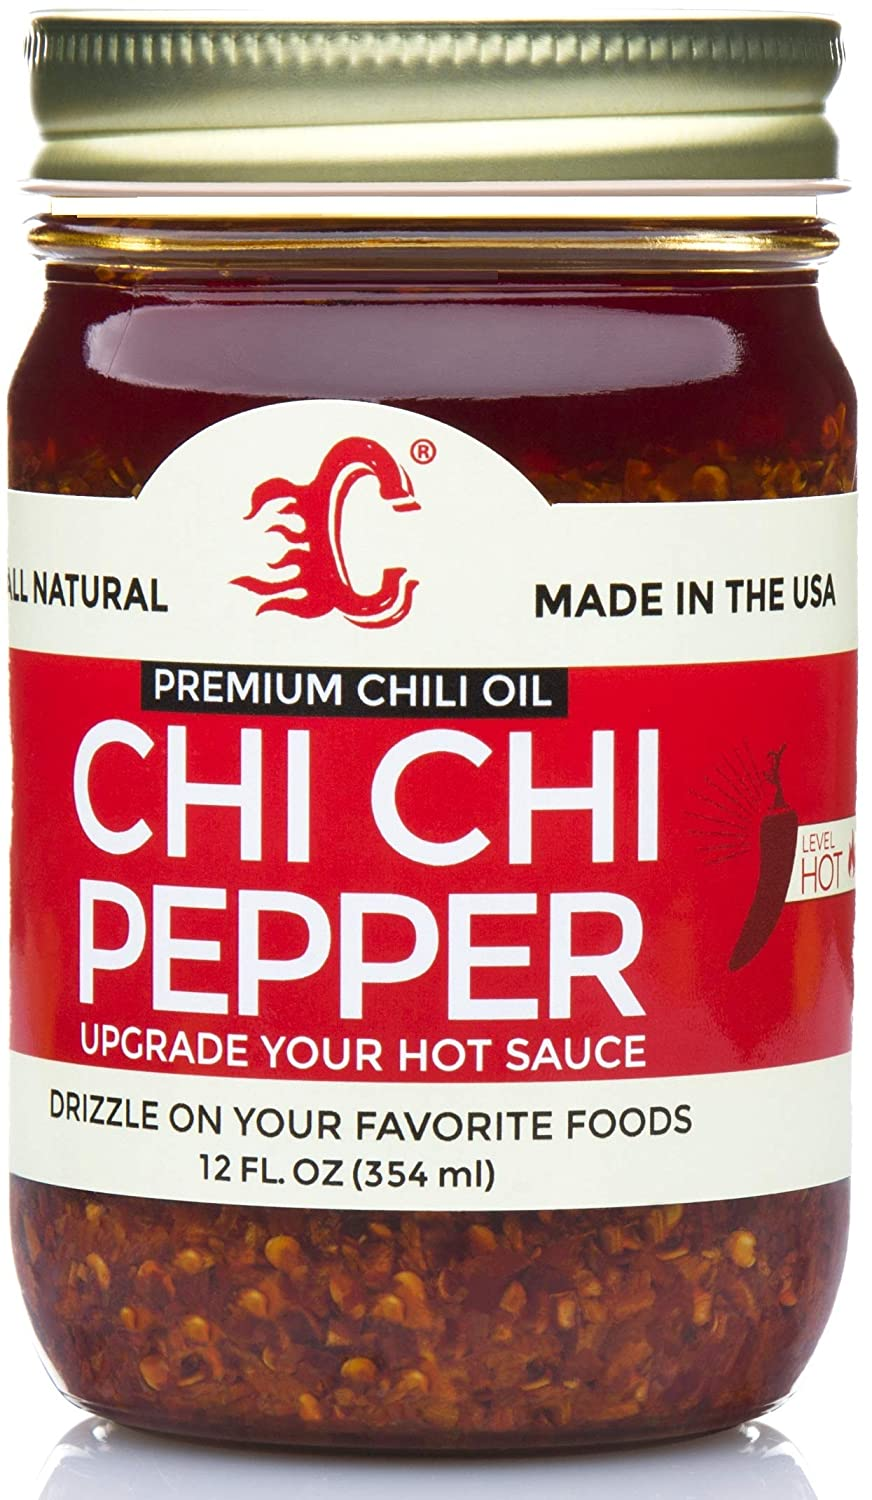 Chi Chi Pepper - (Extra Spicy) Hot Premium Chili Crisp Sauce with Olive Oil and Crunchy Garlic (Large 12 OZ) Versatile Condiment Vegan & Keto Friendly All Natural Made in USA